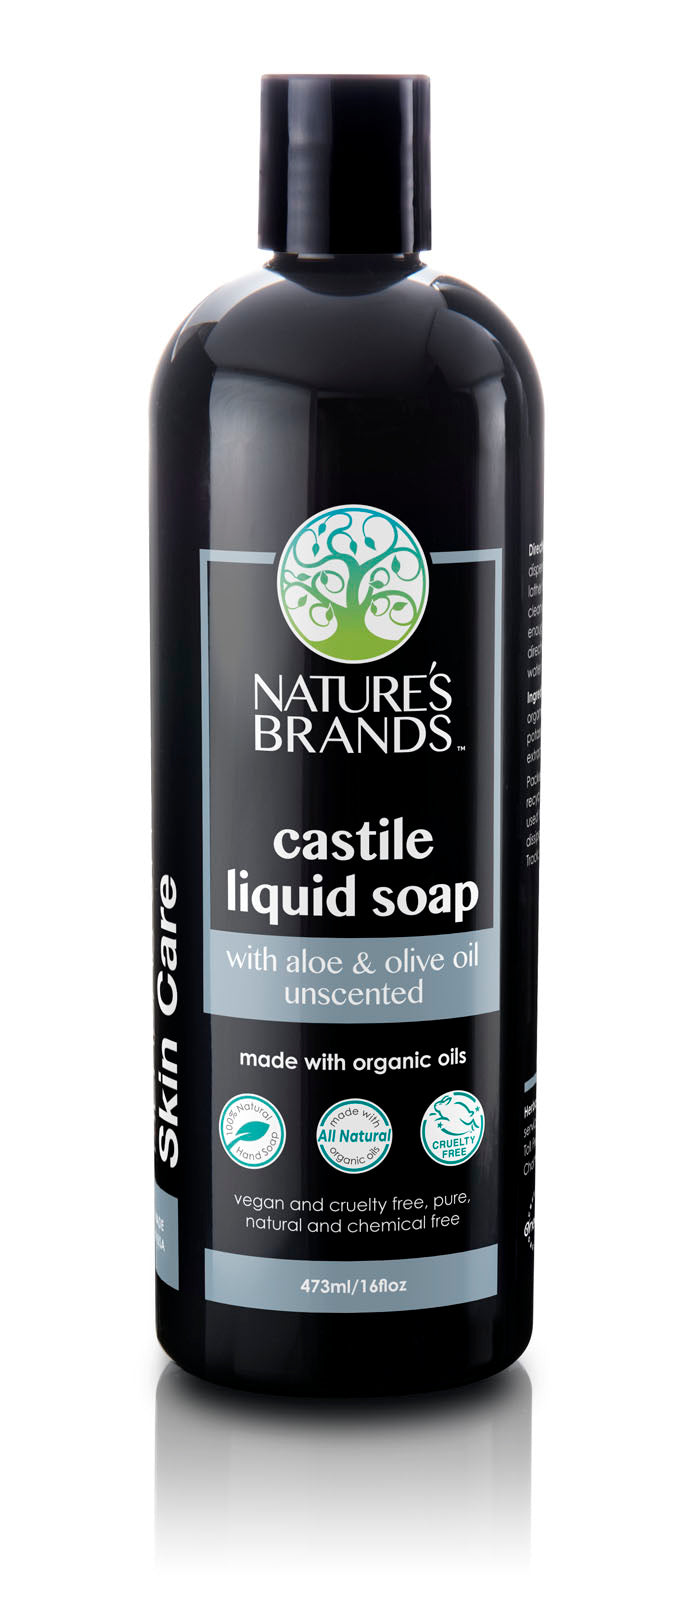 Herbal Choice Mari Natural Aloe Castile Liquid Soap, Unscented; Made with Organic - Herbal Choice Mari Natural Aloe Castile Liquid Soap, Unscented; Made with Organic - Herbal Choice Mari Natural Aloe Castile Liquid Soap, Unscented; Made with Organic